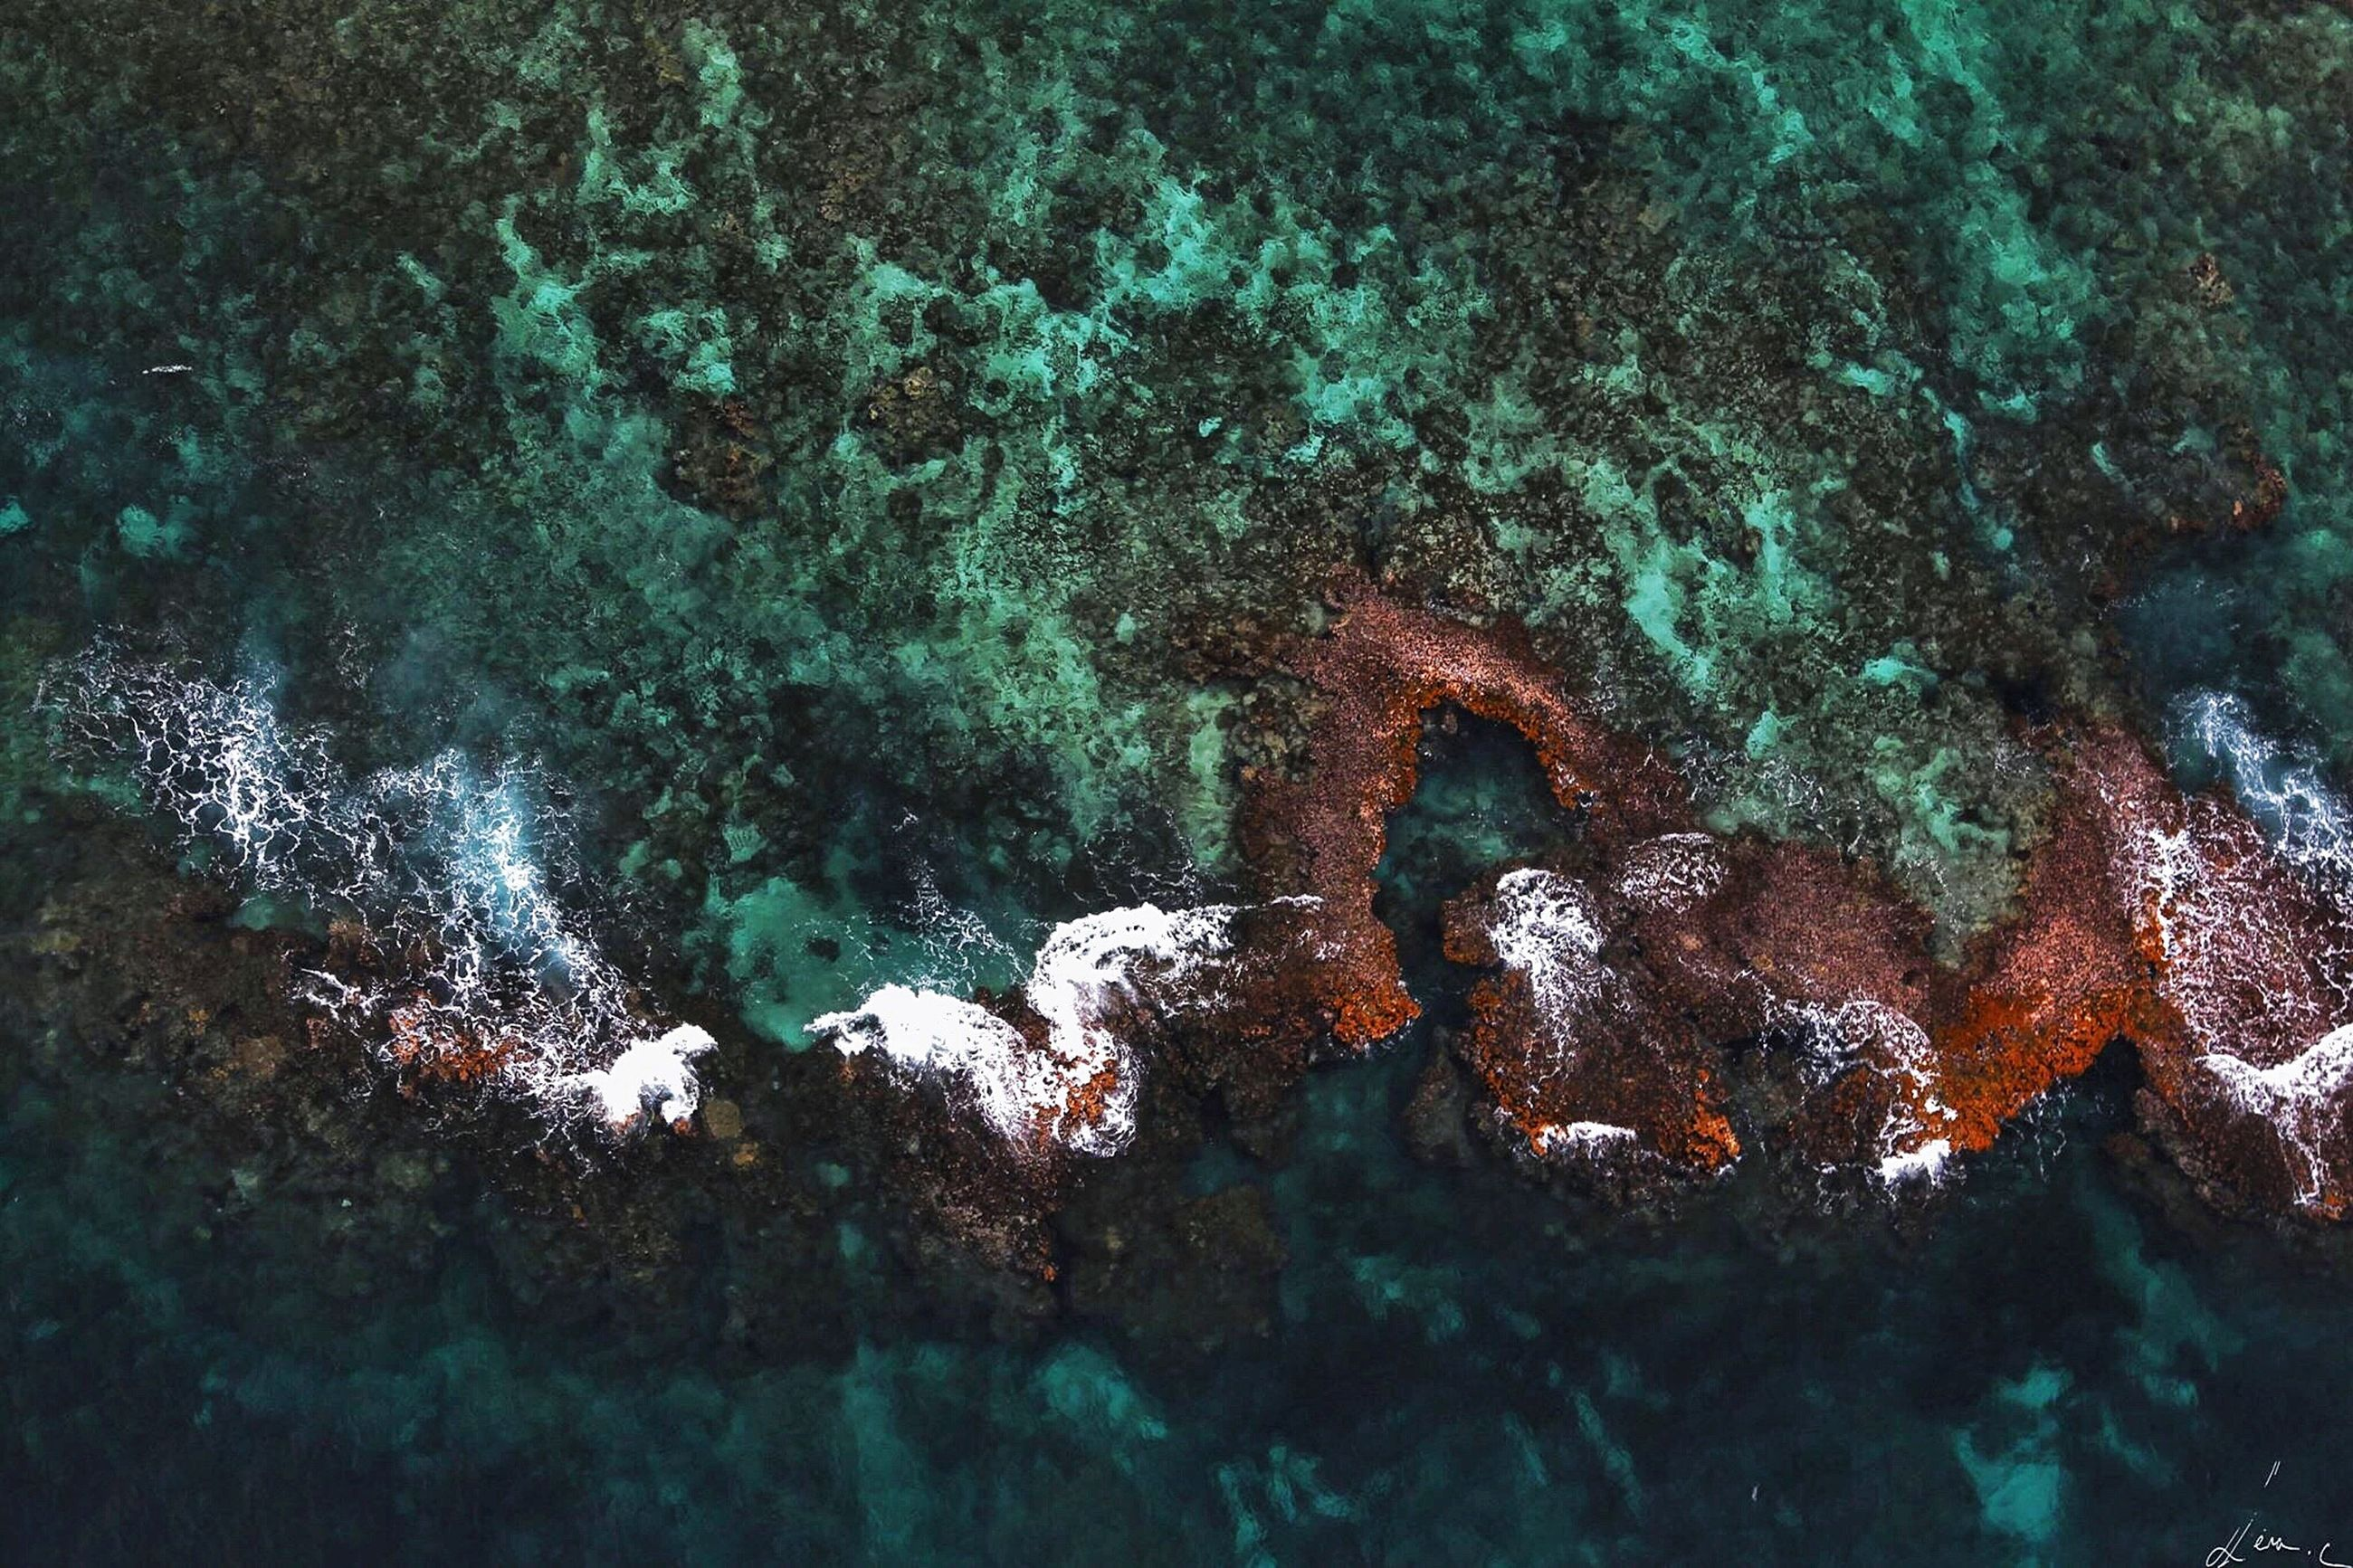 water, high angle view, underwater, nature, rock - object, animal themes, swimming, undersea, sea, fish, sea life, beauty in nature, animals in the wild, wildlife, outdoors, tranquility, day, no people, rock, one animal